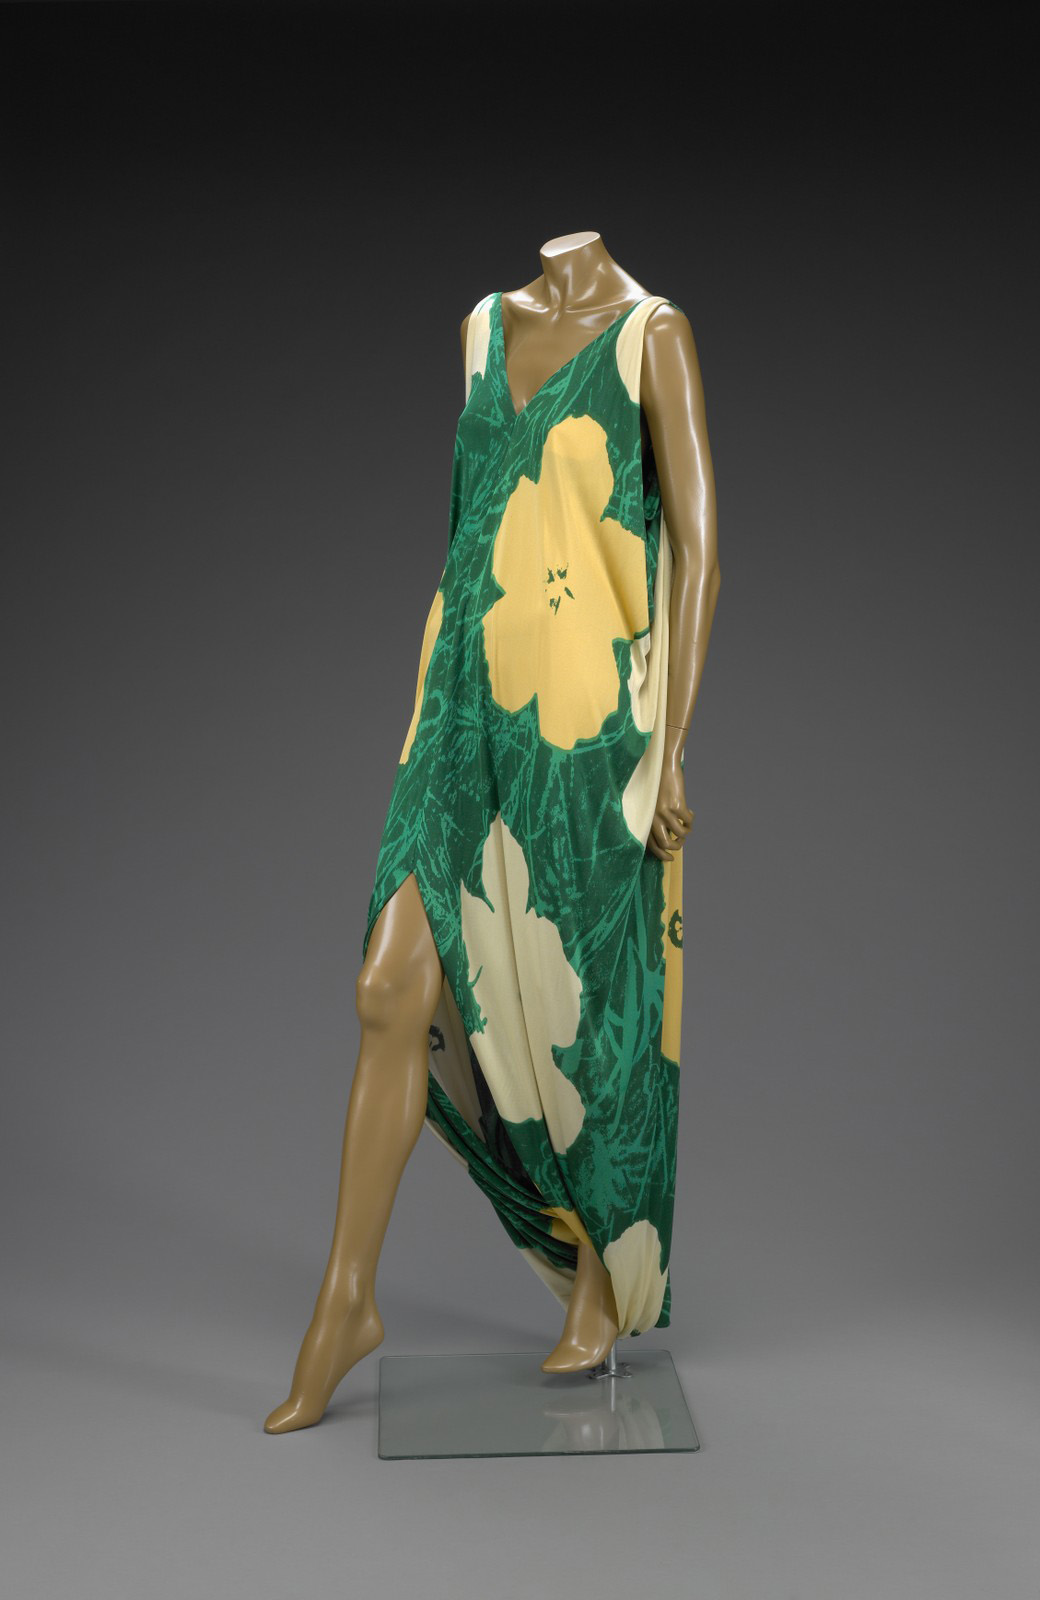 Halston silk dress, 1972, based on Warhol's flowers paintings, 1964